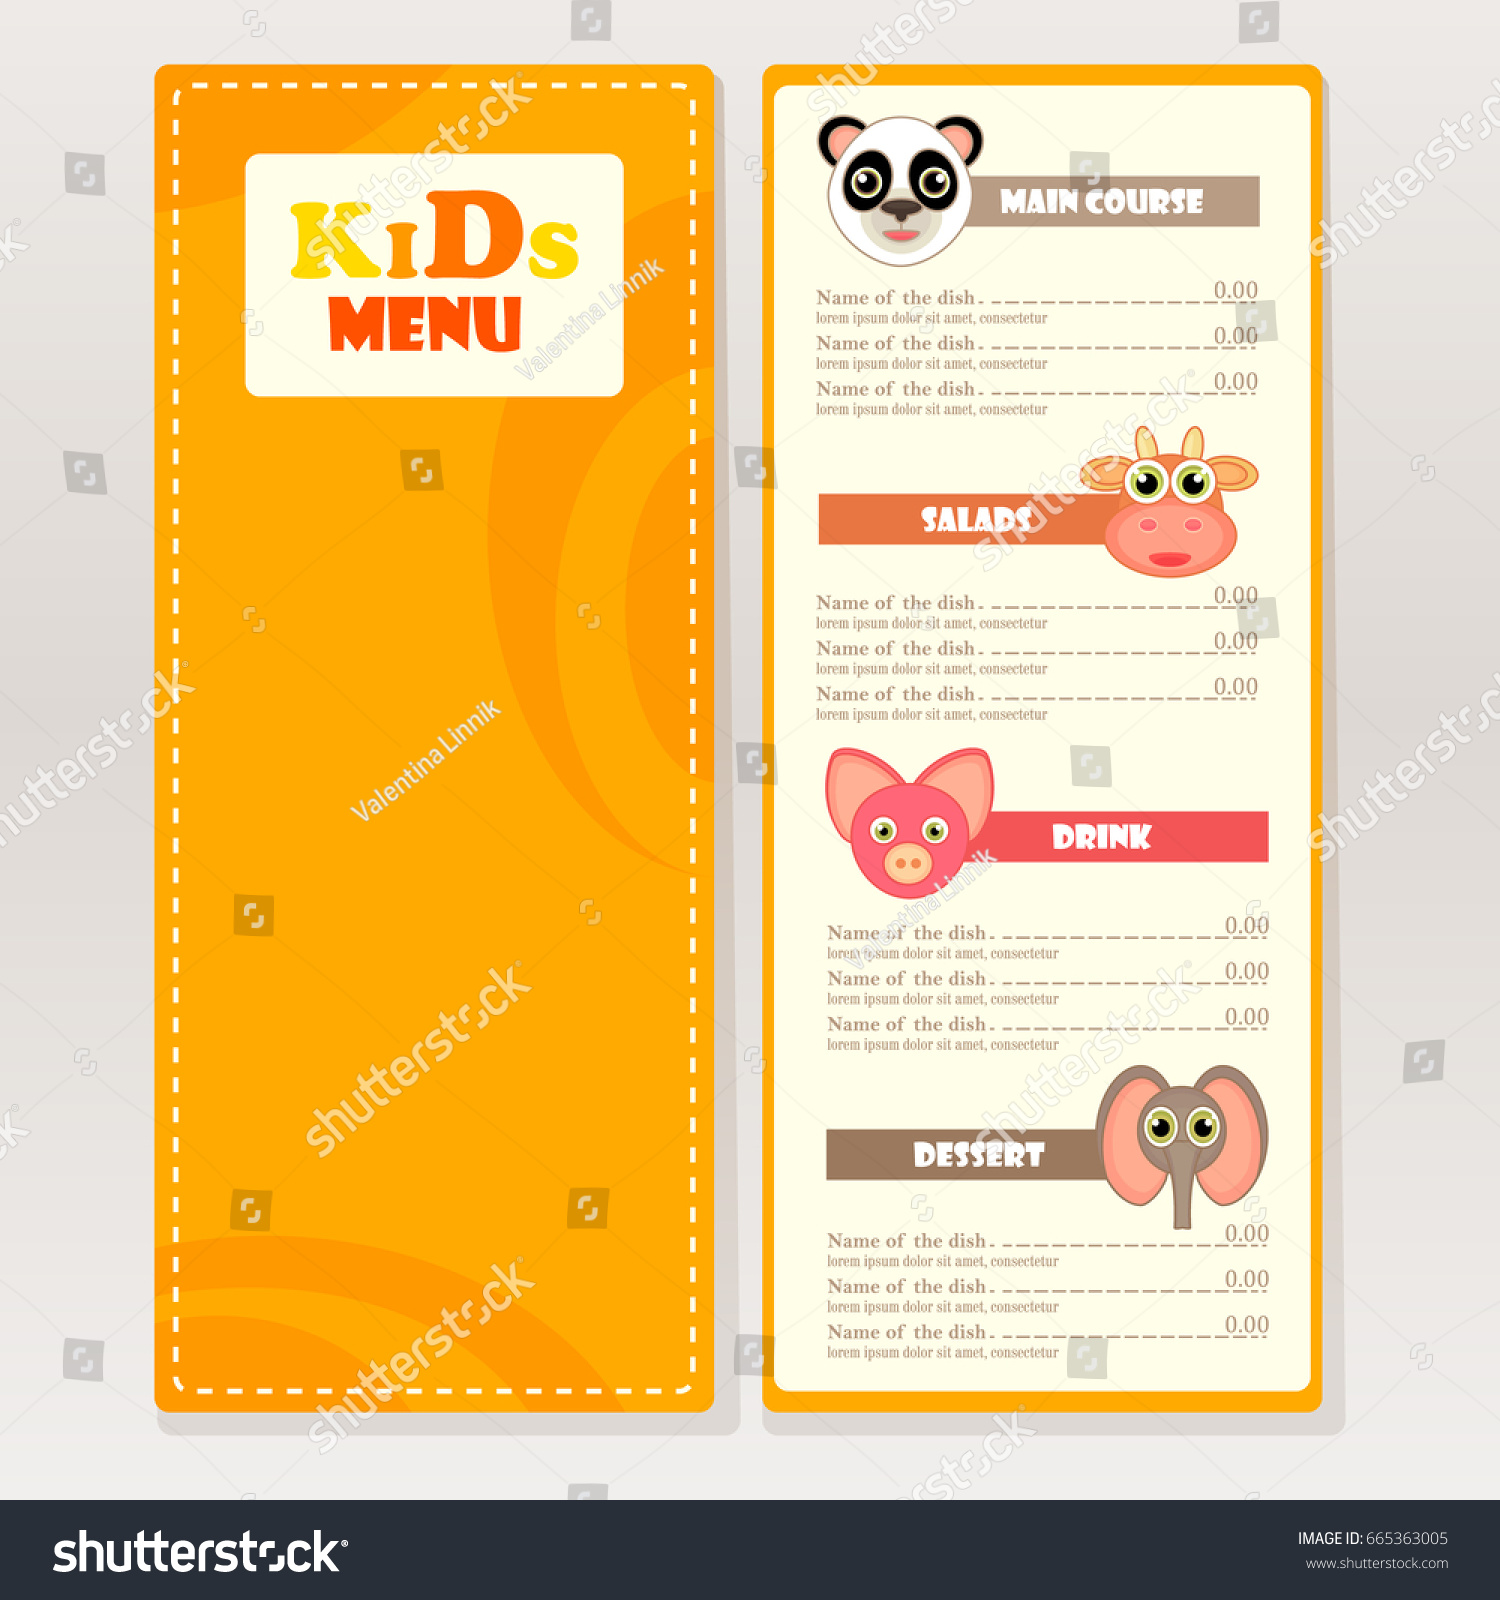 Beautiful Design Sample Kids Menu For Cafes, Restaurants. Bright Graphic Objects,  Animal Silhouette,